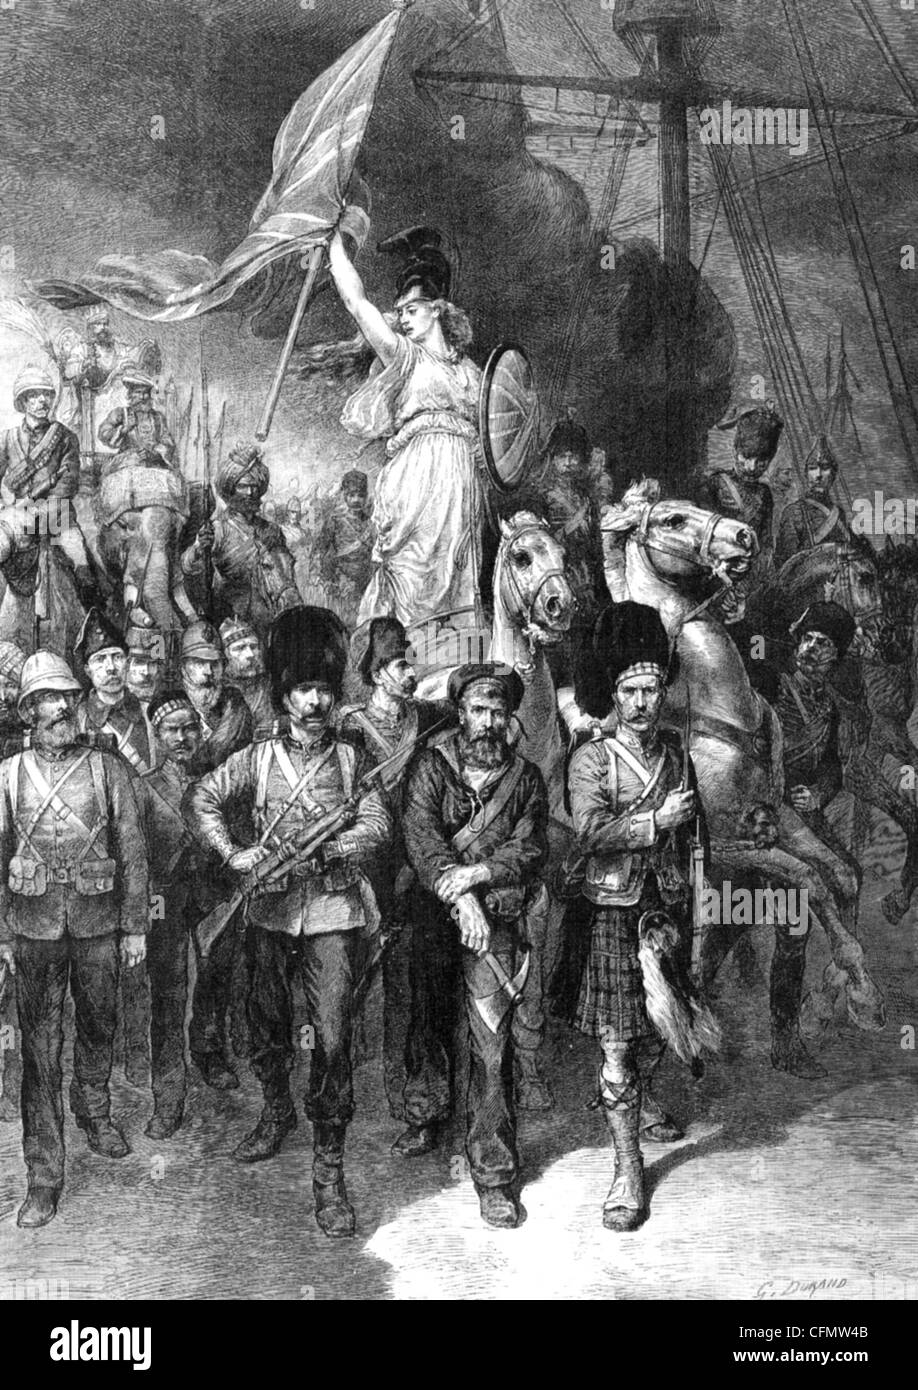 BRITANNIA  AND HER BOYS  Patriotic illustration from the Illustrated London News, 1885 - Stock Image